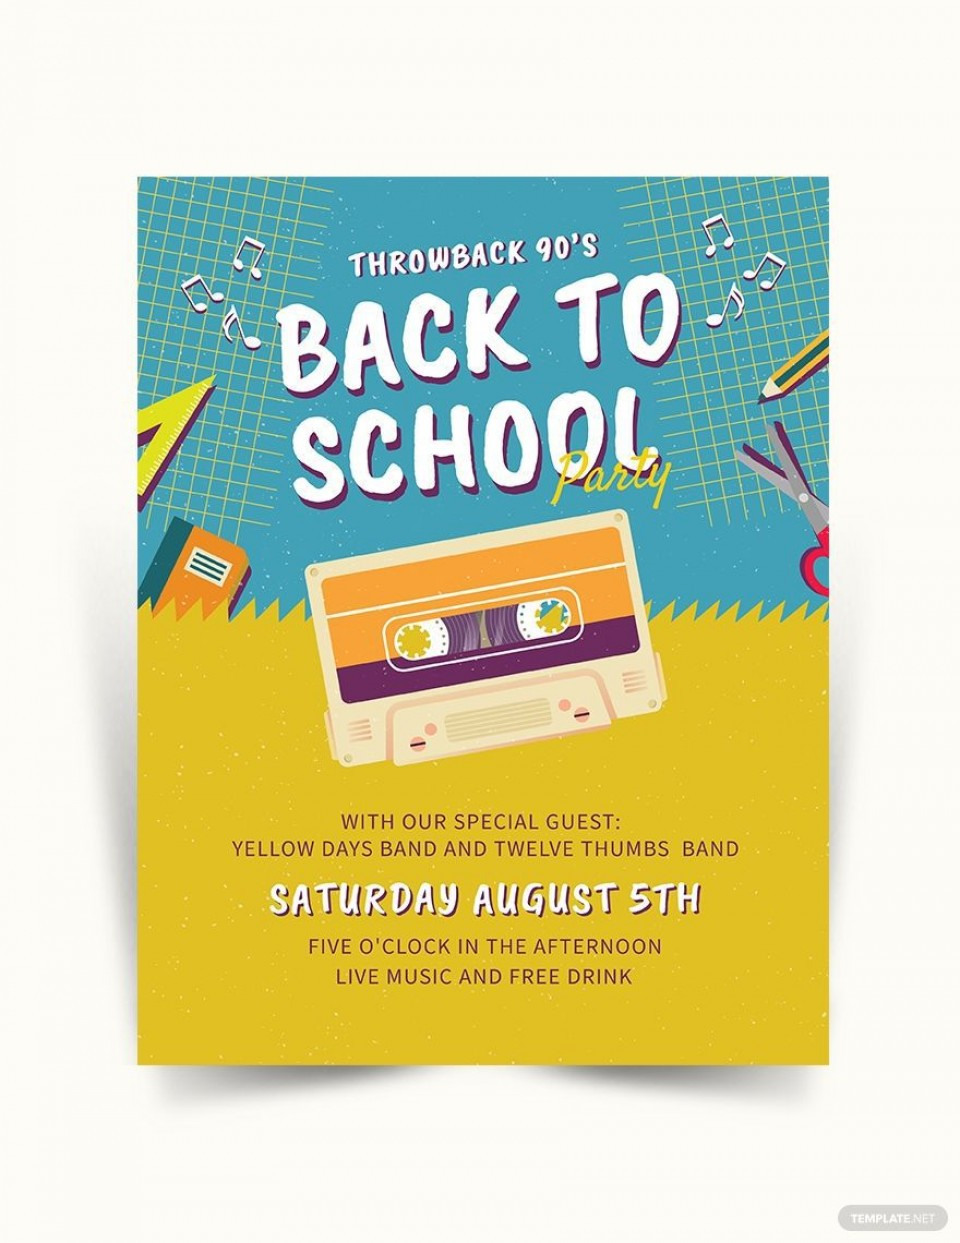 005 Rare Free Back To School Flyer Template Word Idea 960